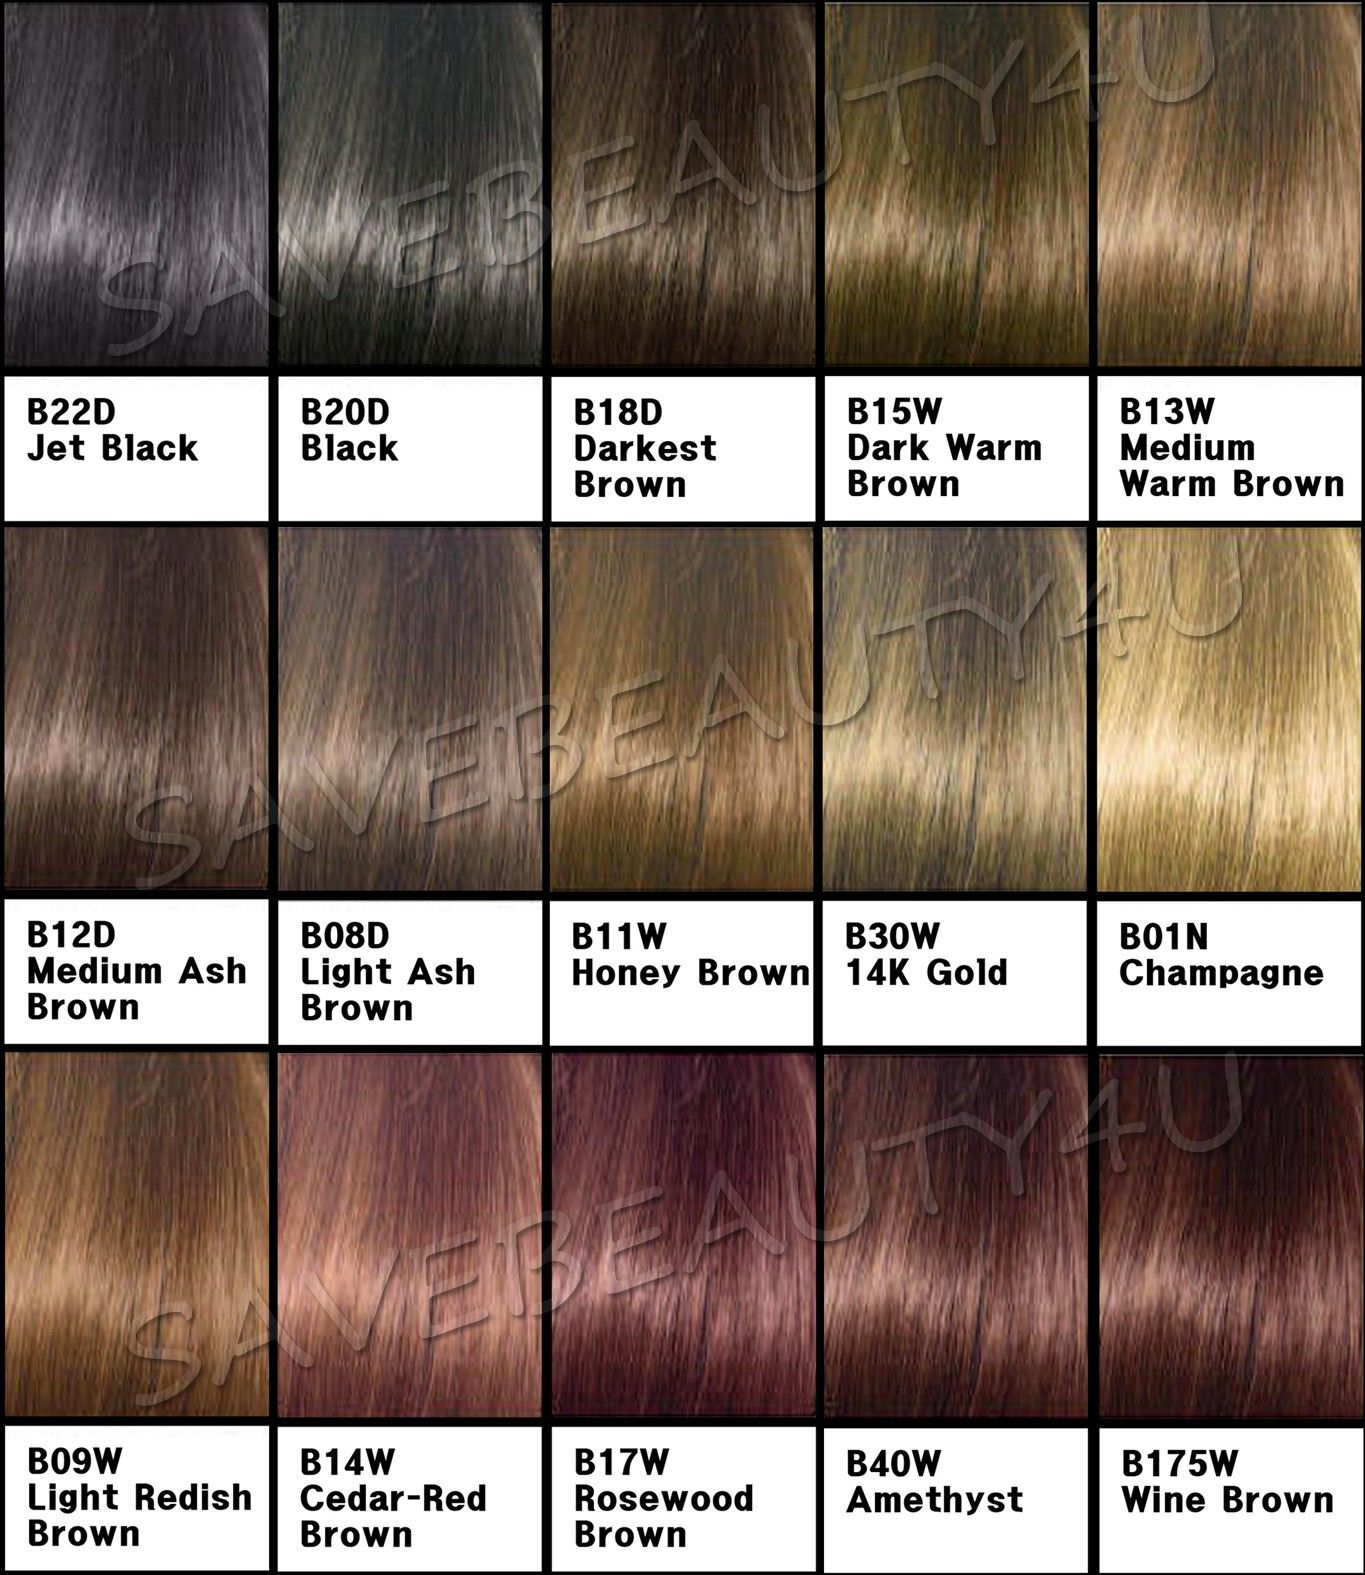 Aveda Hair Dye Color Chart 365197 Aveda Hair Color Chart Full Spectrum Tutorials In 2020 Hair Color Chart Blonde Hair Color Chart Blonde Hair Color